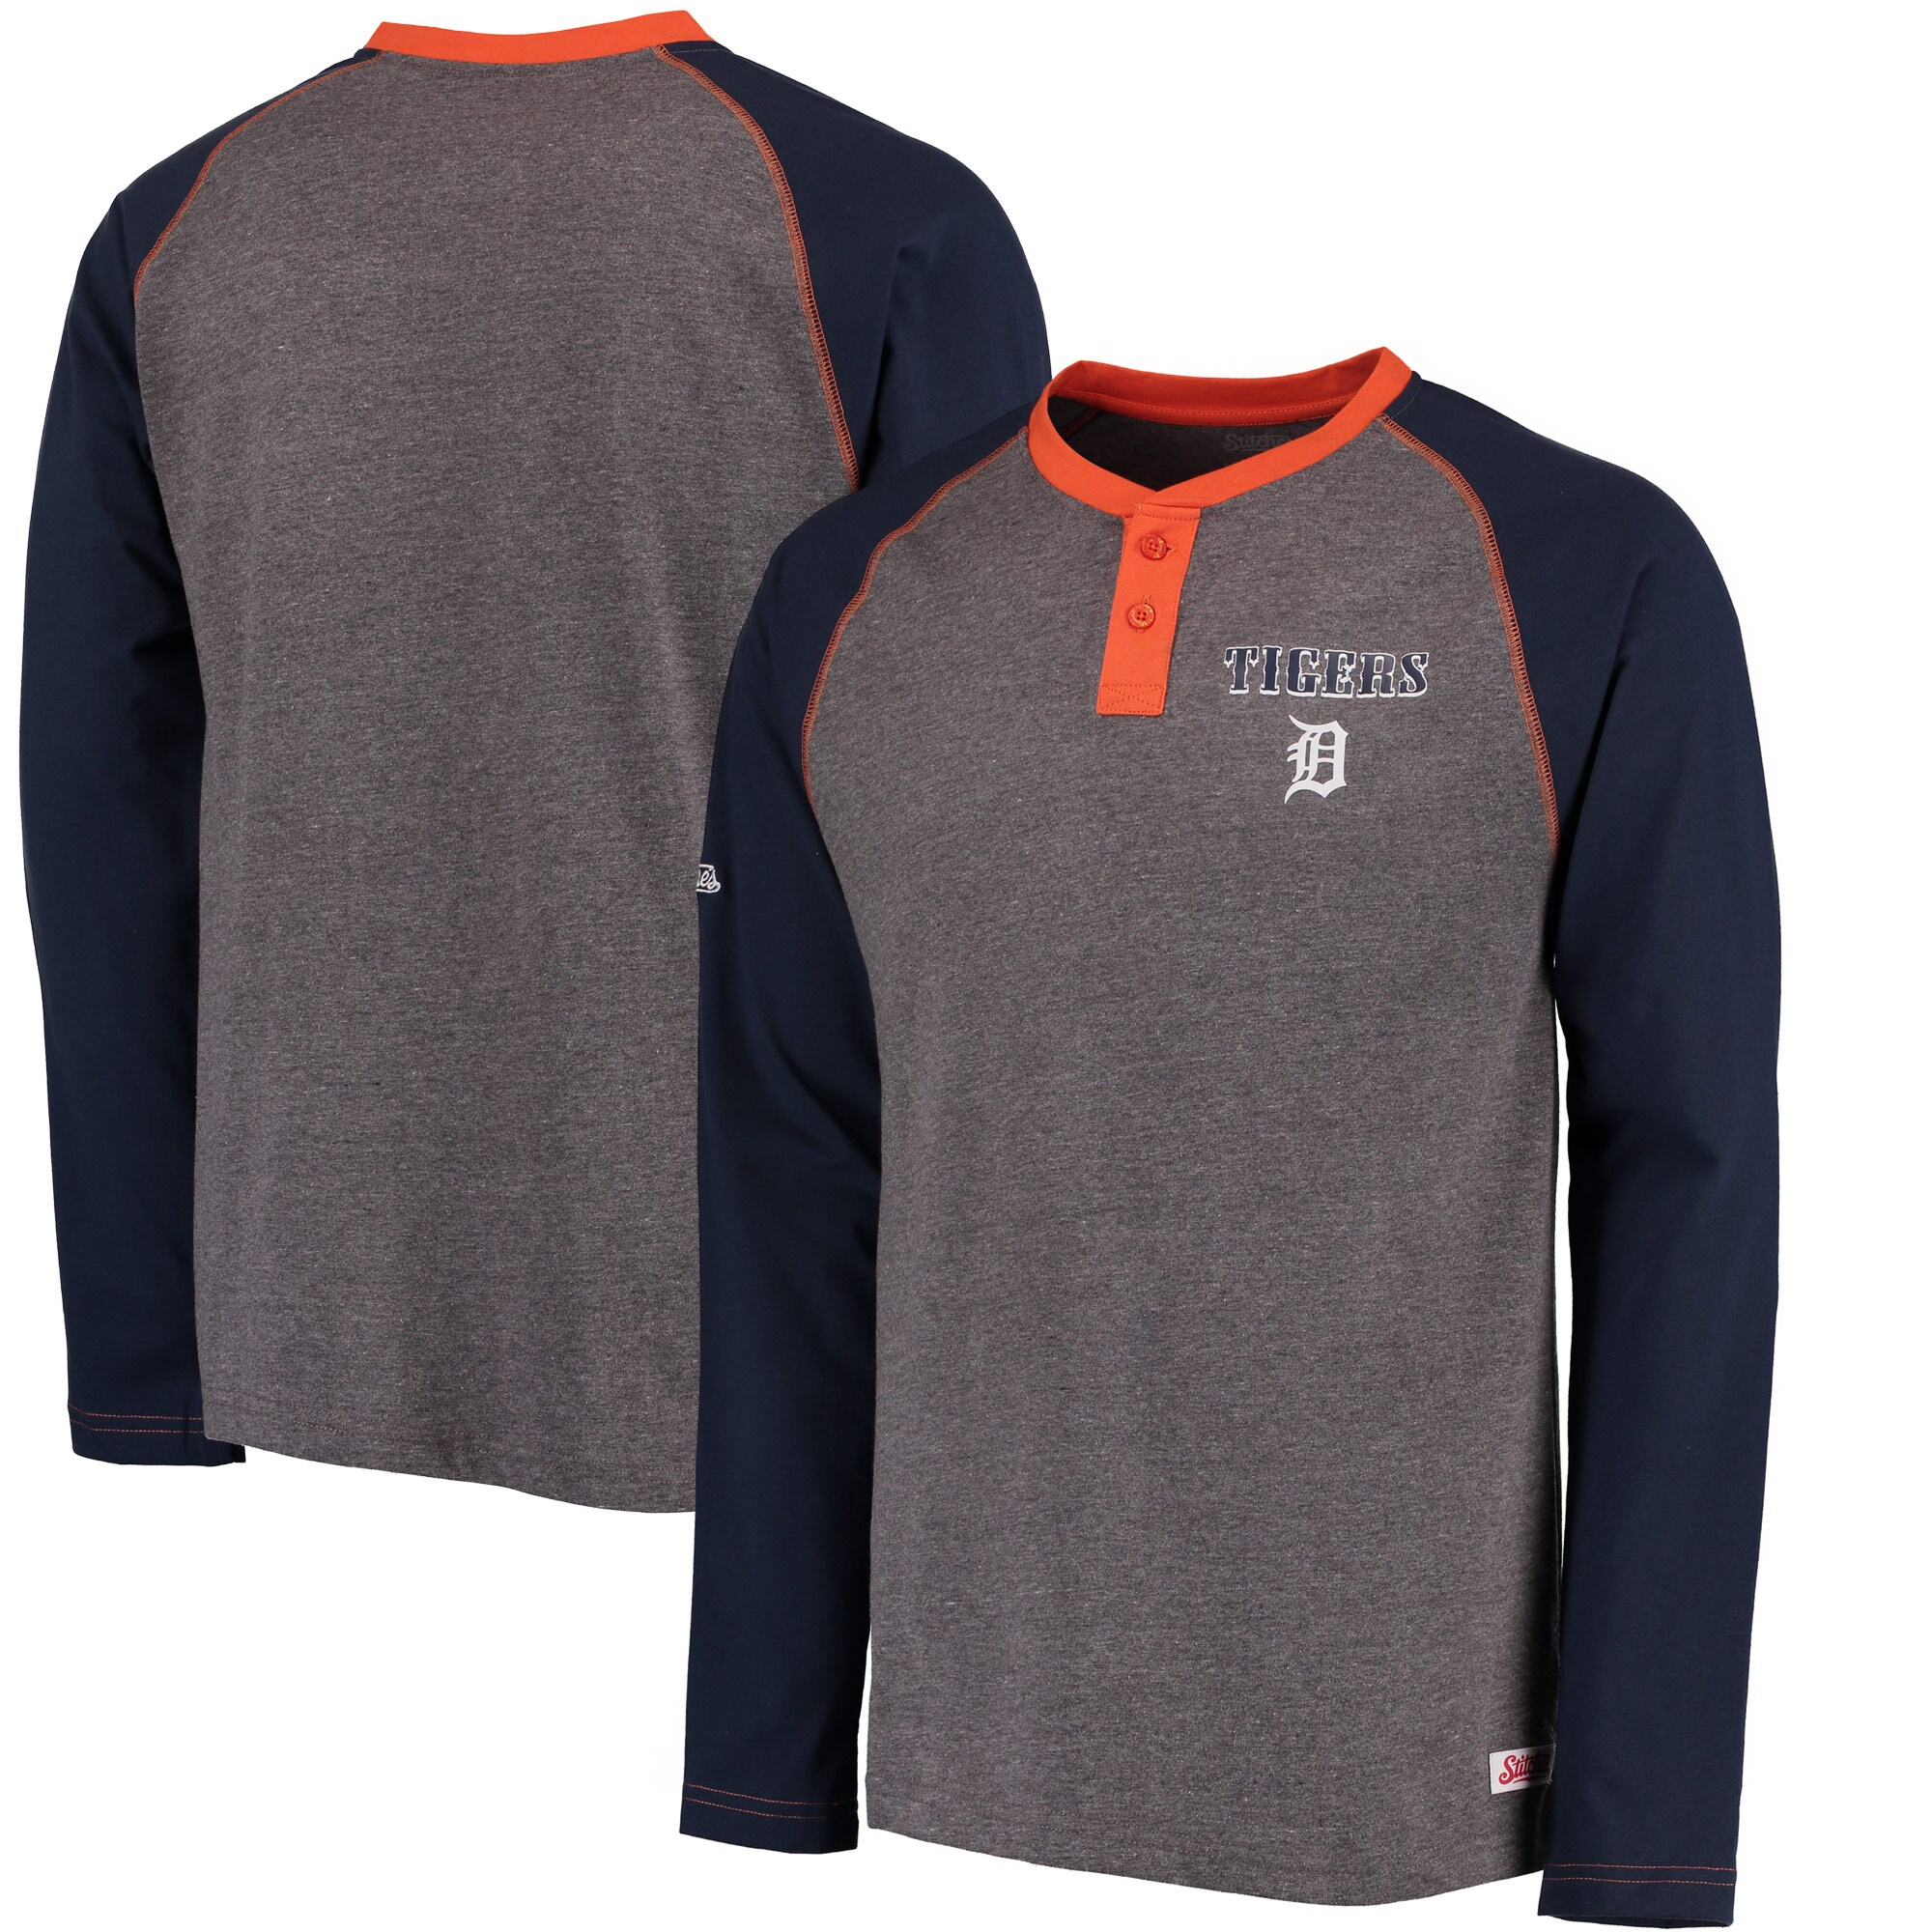 Detroit Tigers Stitches Home Run Long Sleeve Henley T-Shirt - Heathered Gray/Navy